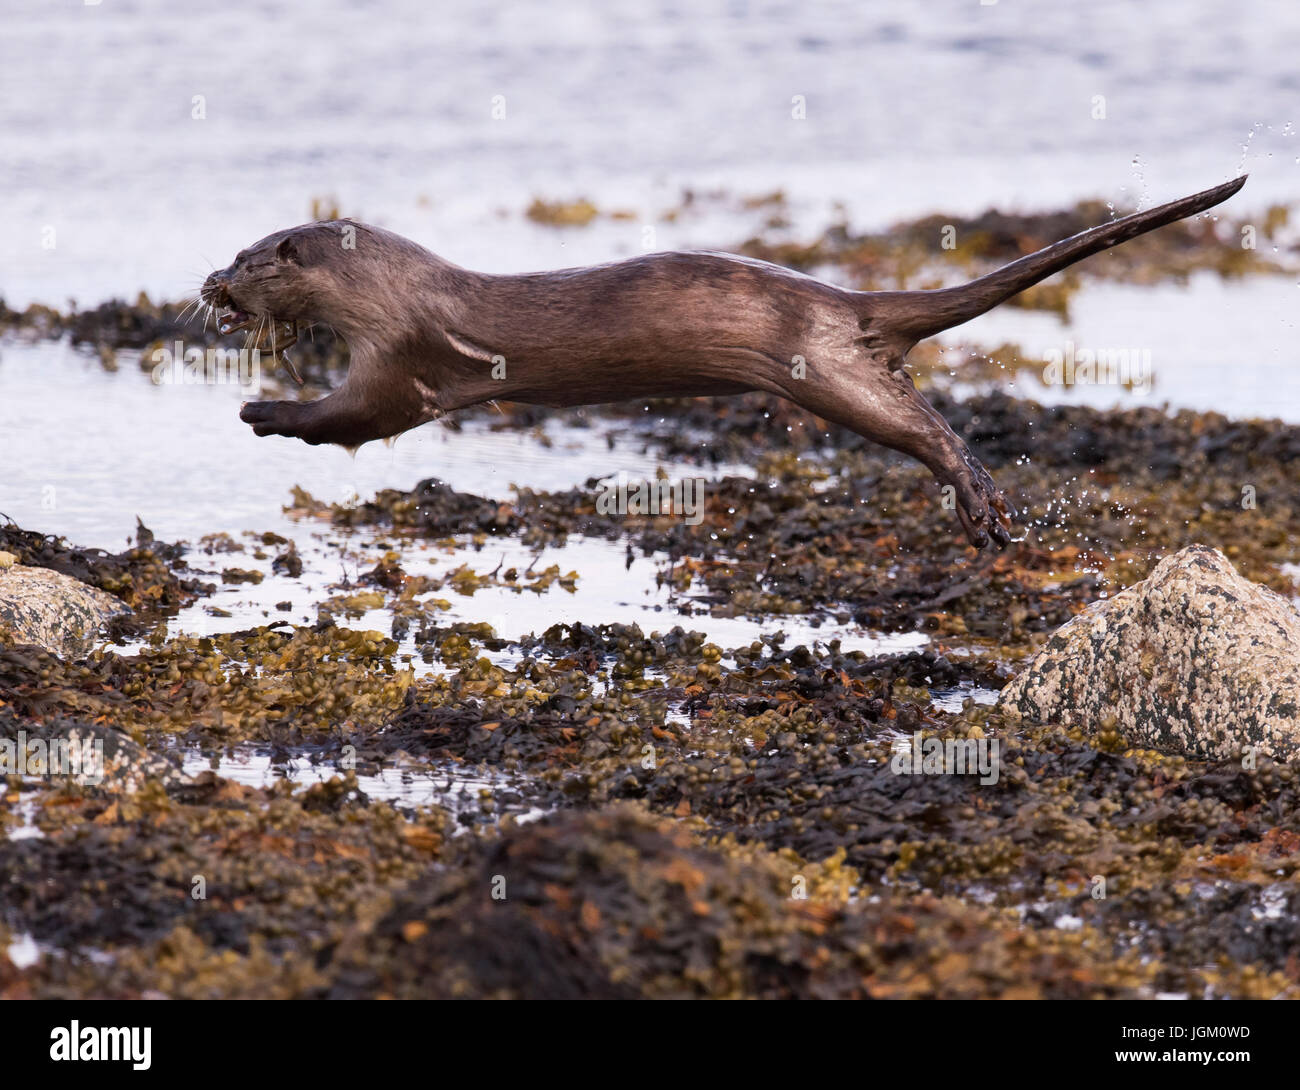 Eurasian otter (Lutra lutra) leaping bewteen rocks with a crab, Shetland, UK - Stock Image